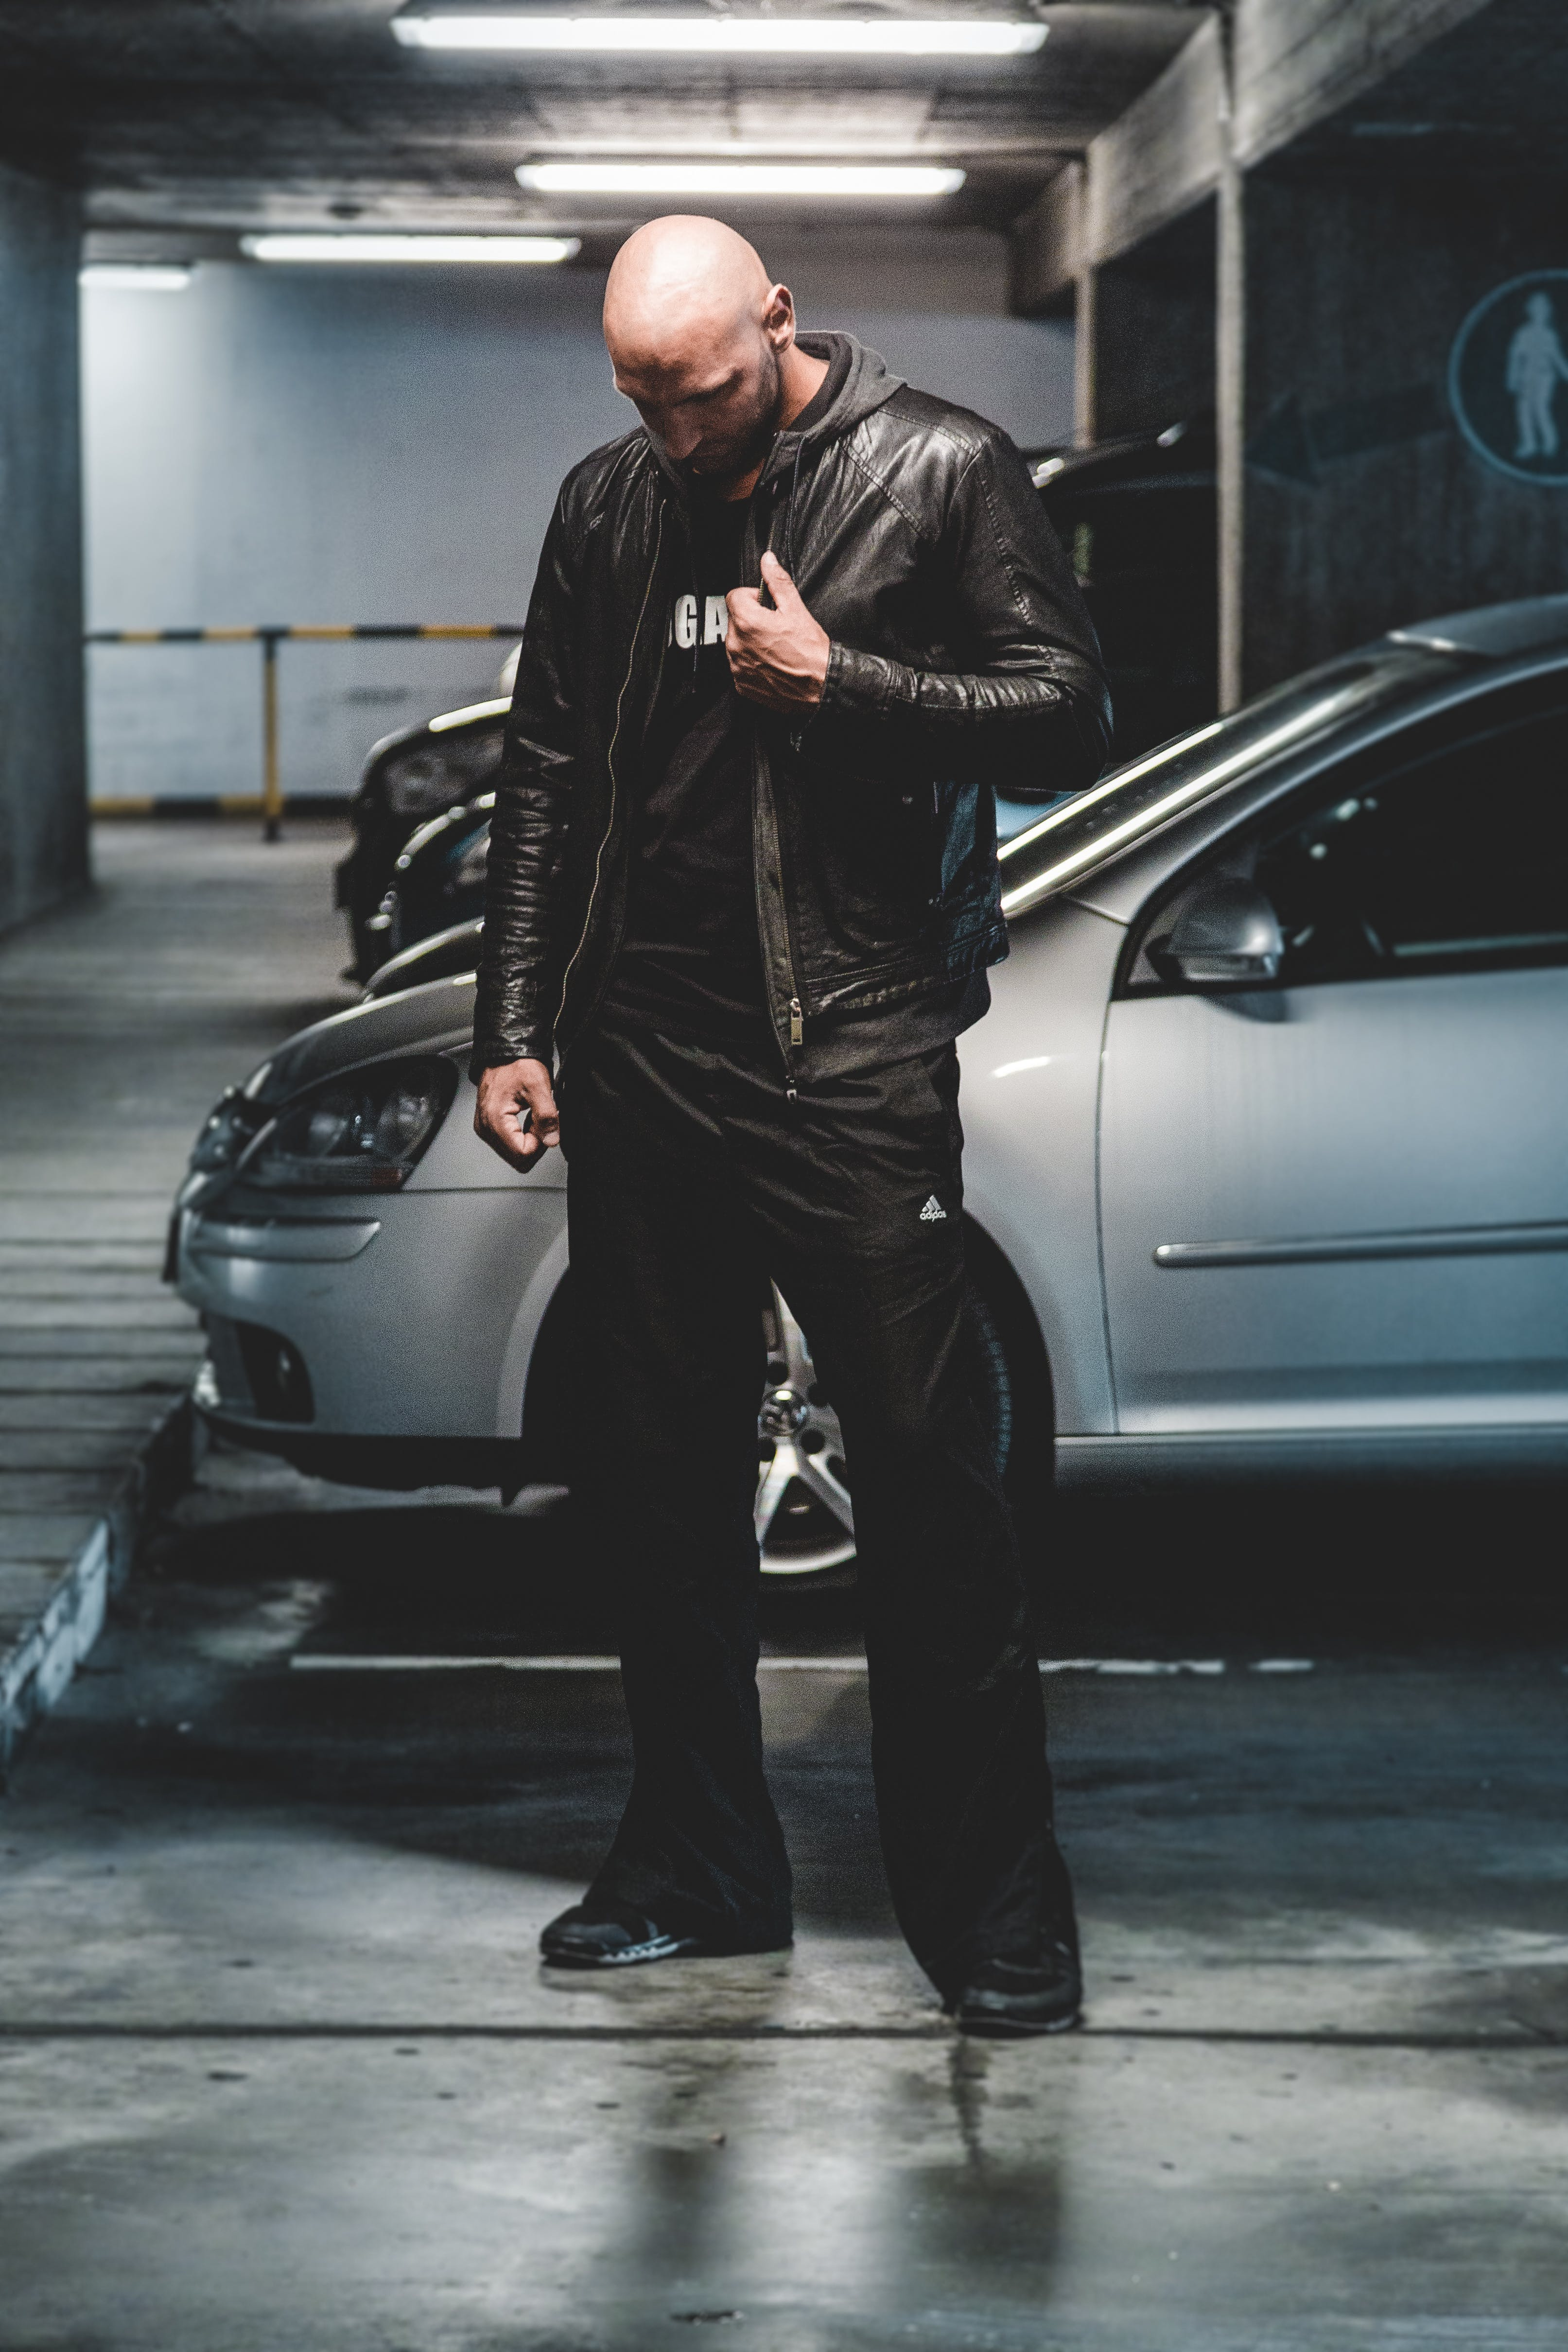 Man in Black Leather Jacket Standing in Front of Gray Car